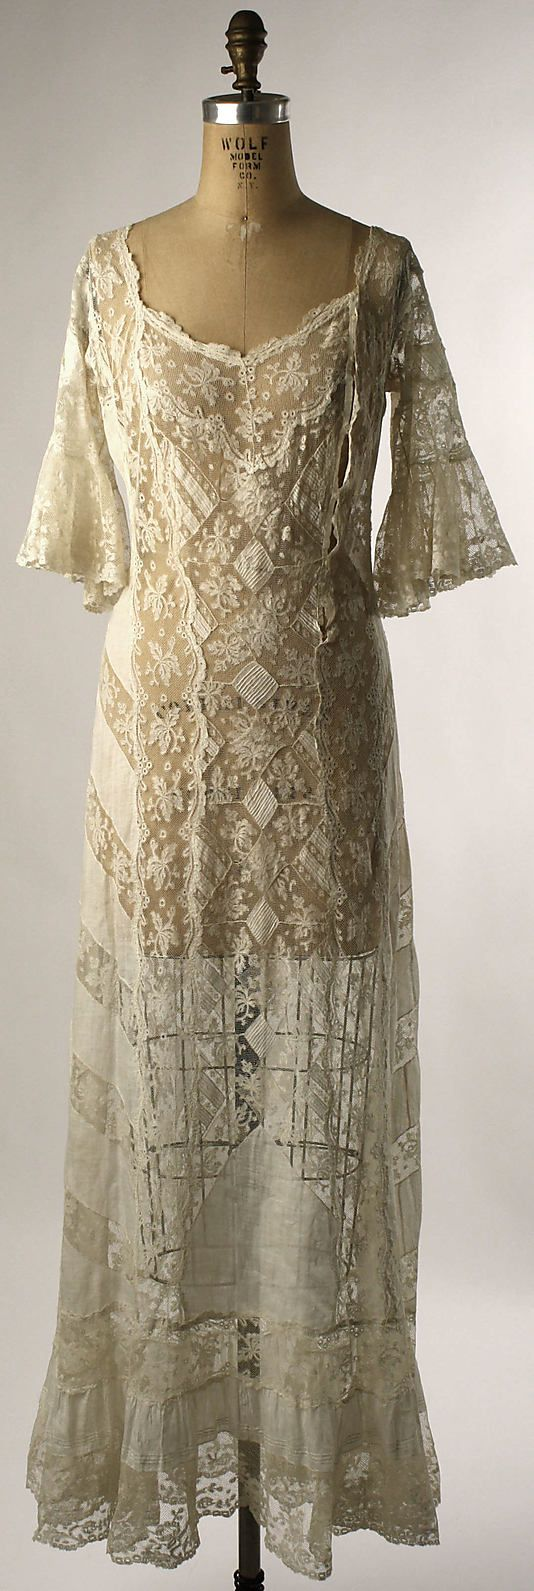 Morning dress, 1820-1850. Dresses were identified by the time of day. Morning dresses were the least informal, like this dress they were made of cotton or fine linen with lace or ruffled trimmings.